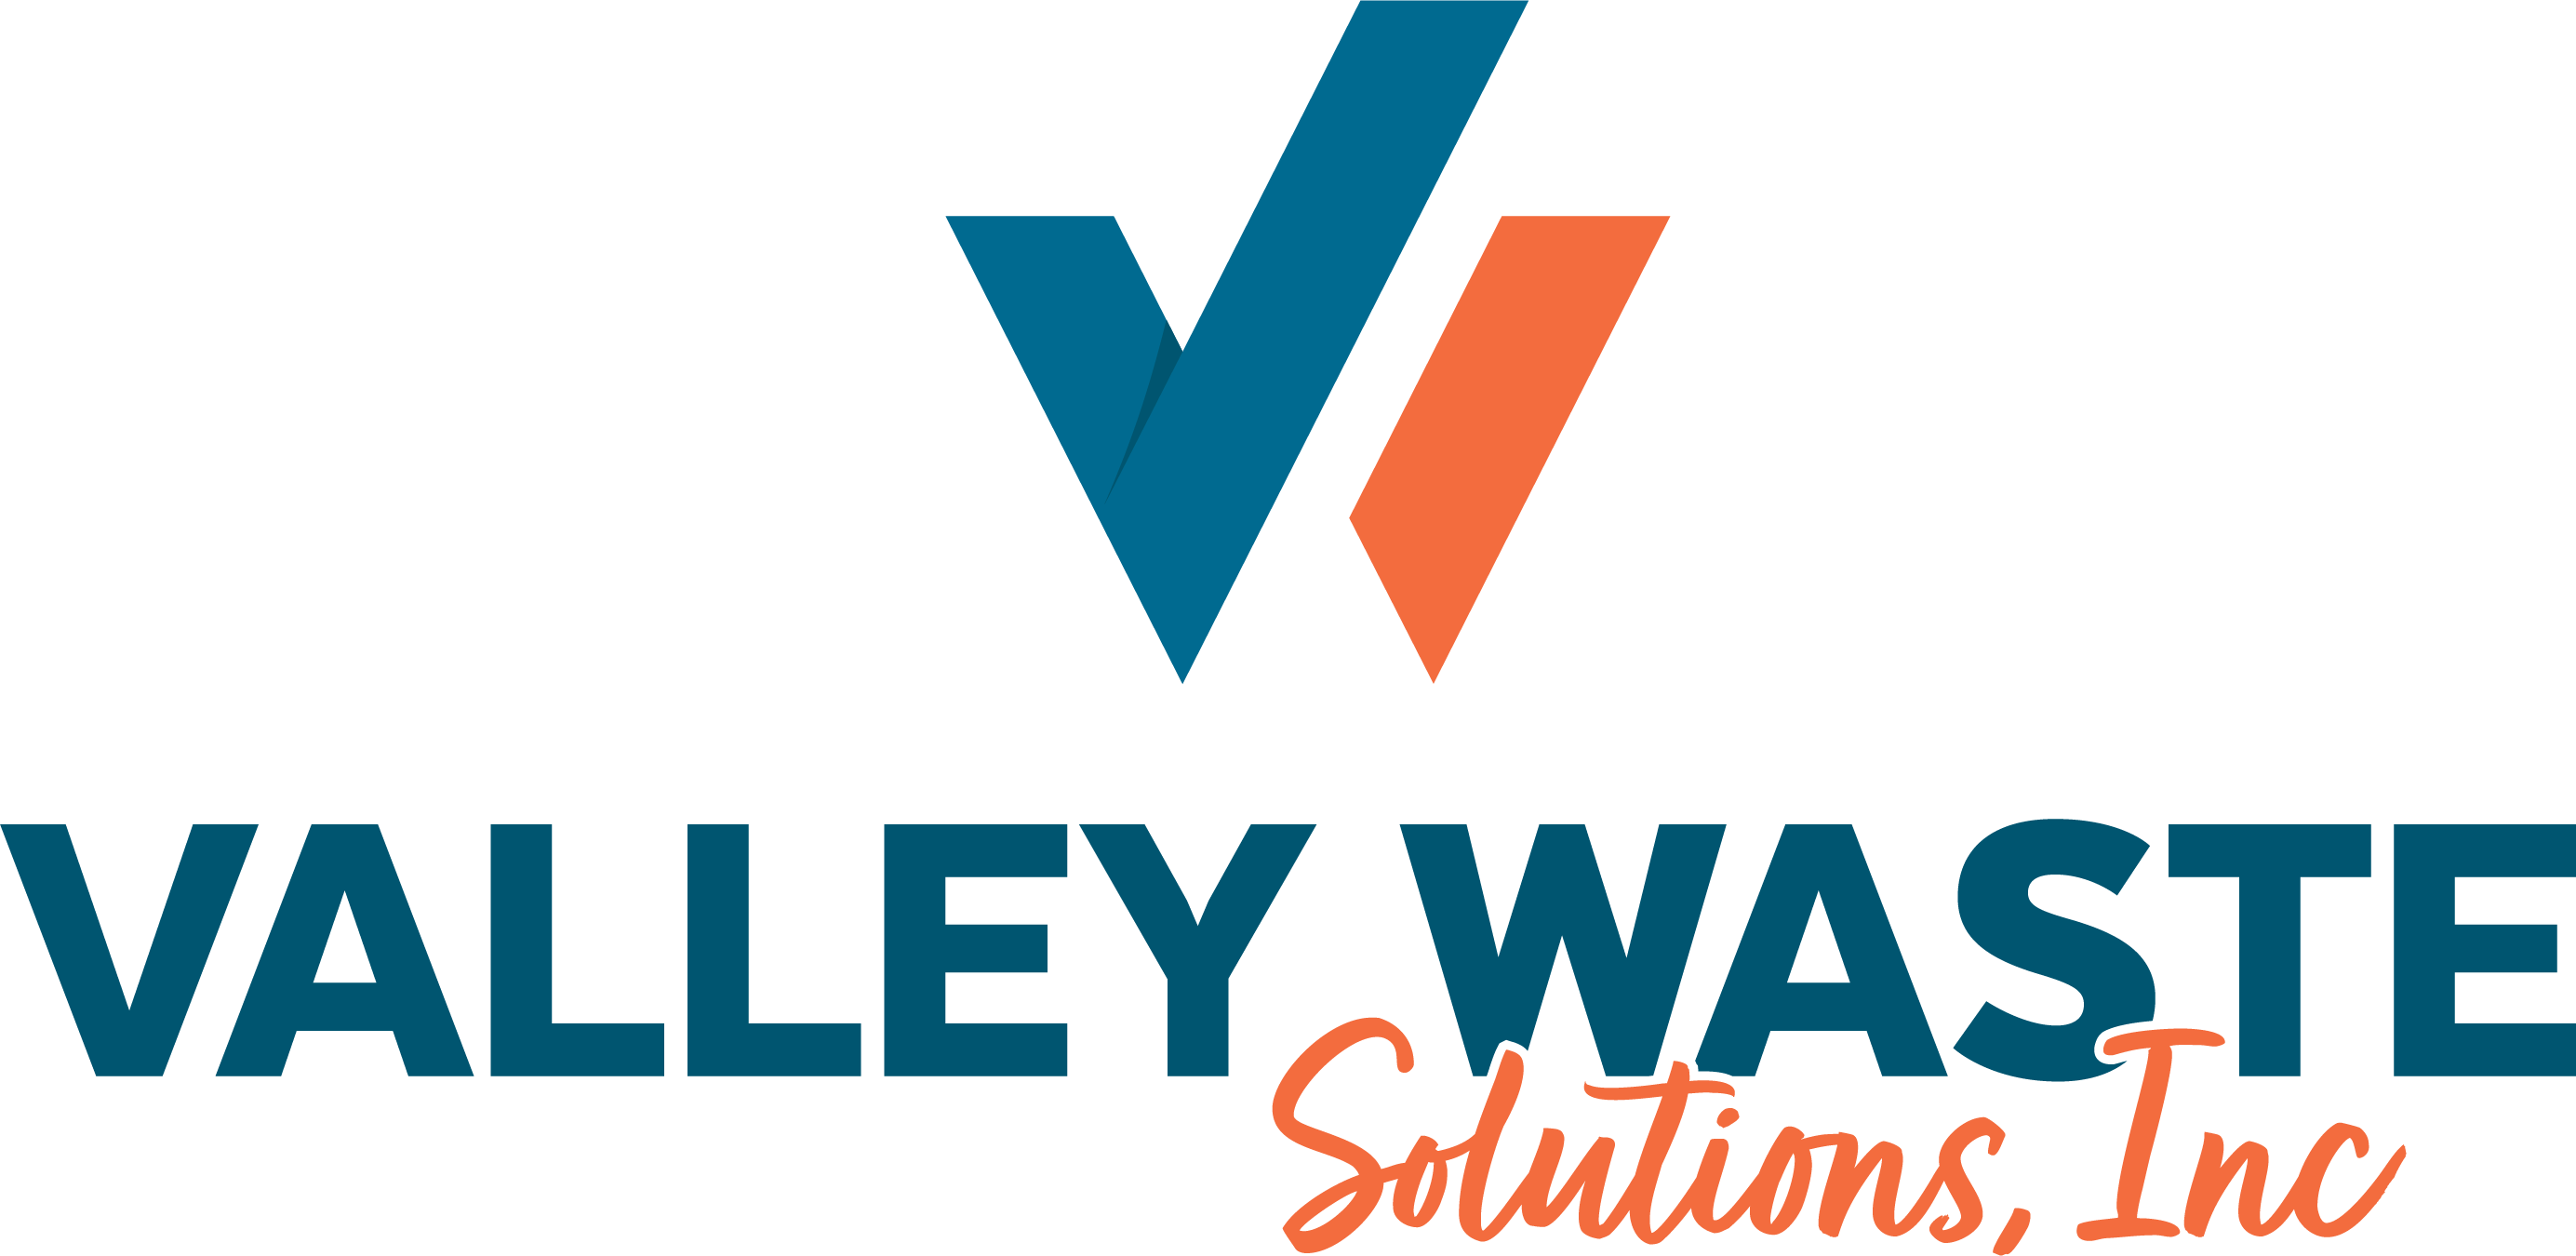 Valley Waste Solutions, Inc.